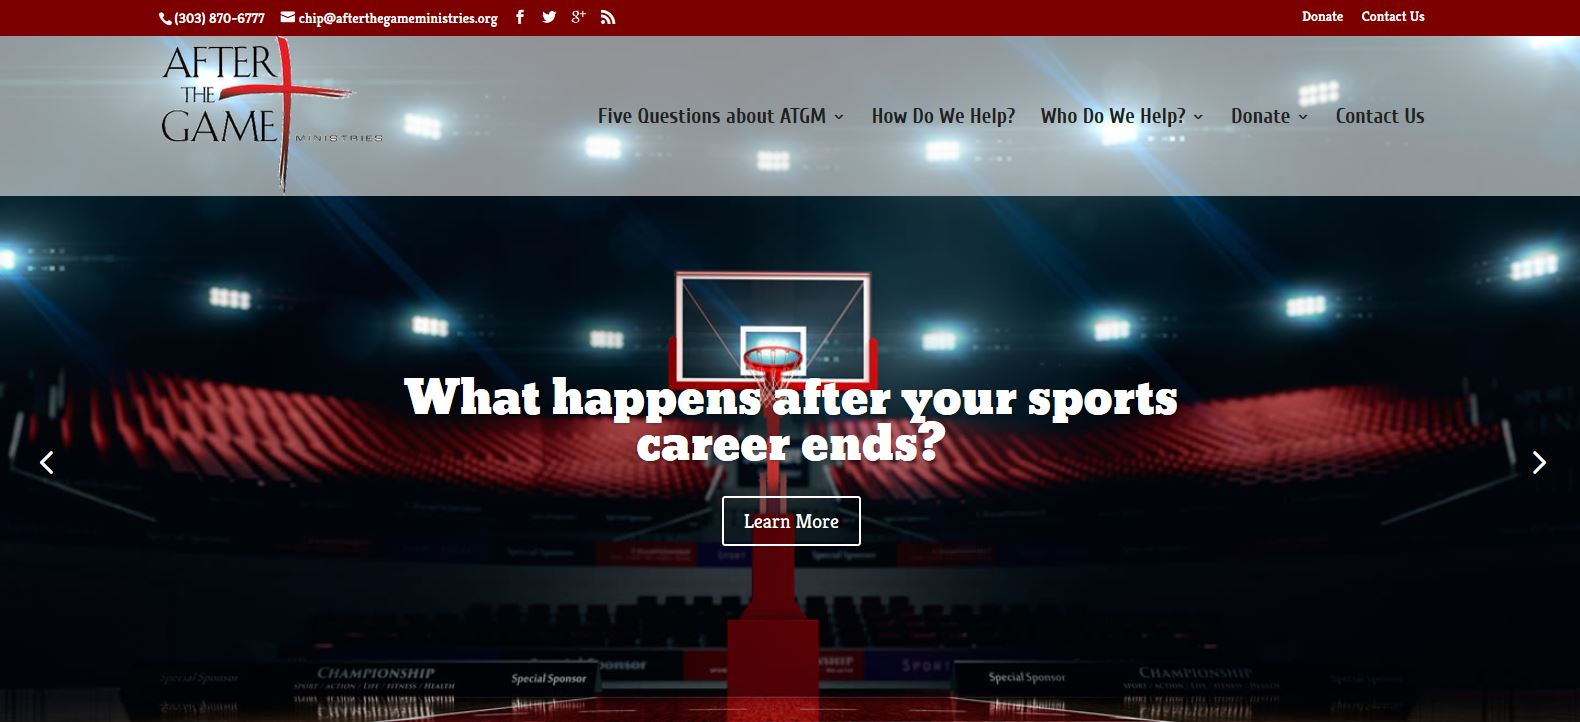 A redesigned website for After The Game Ministries